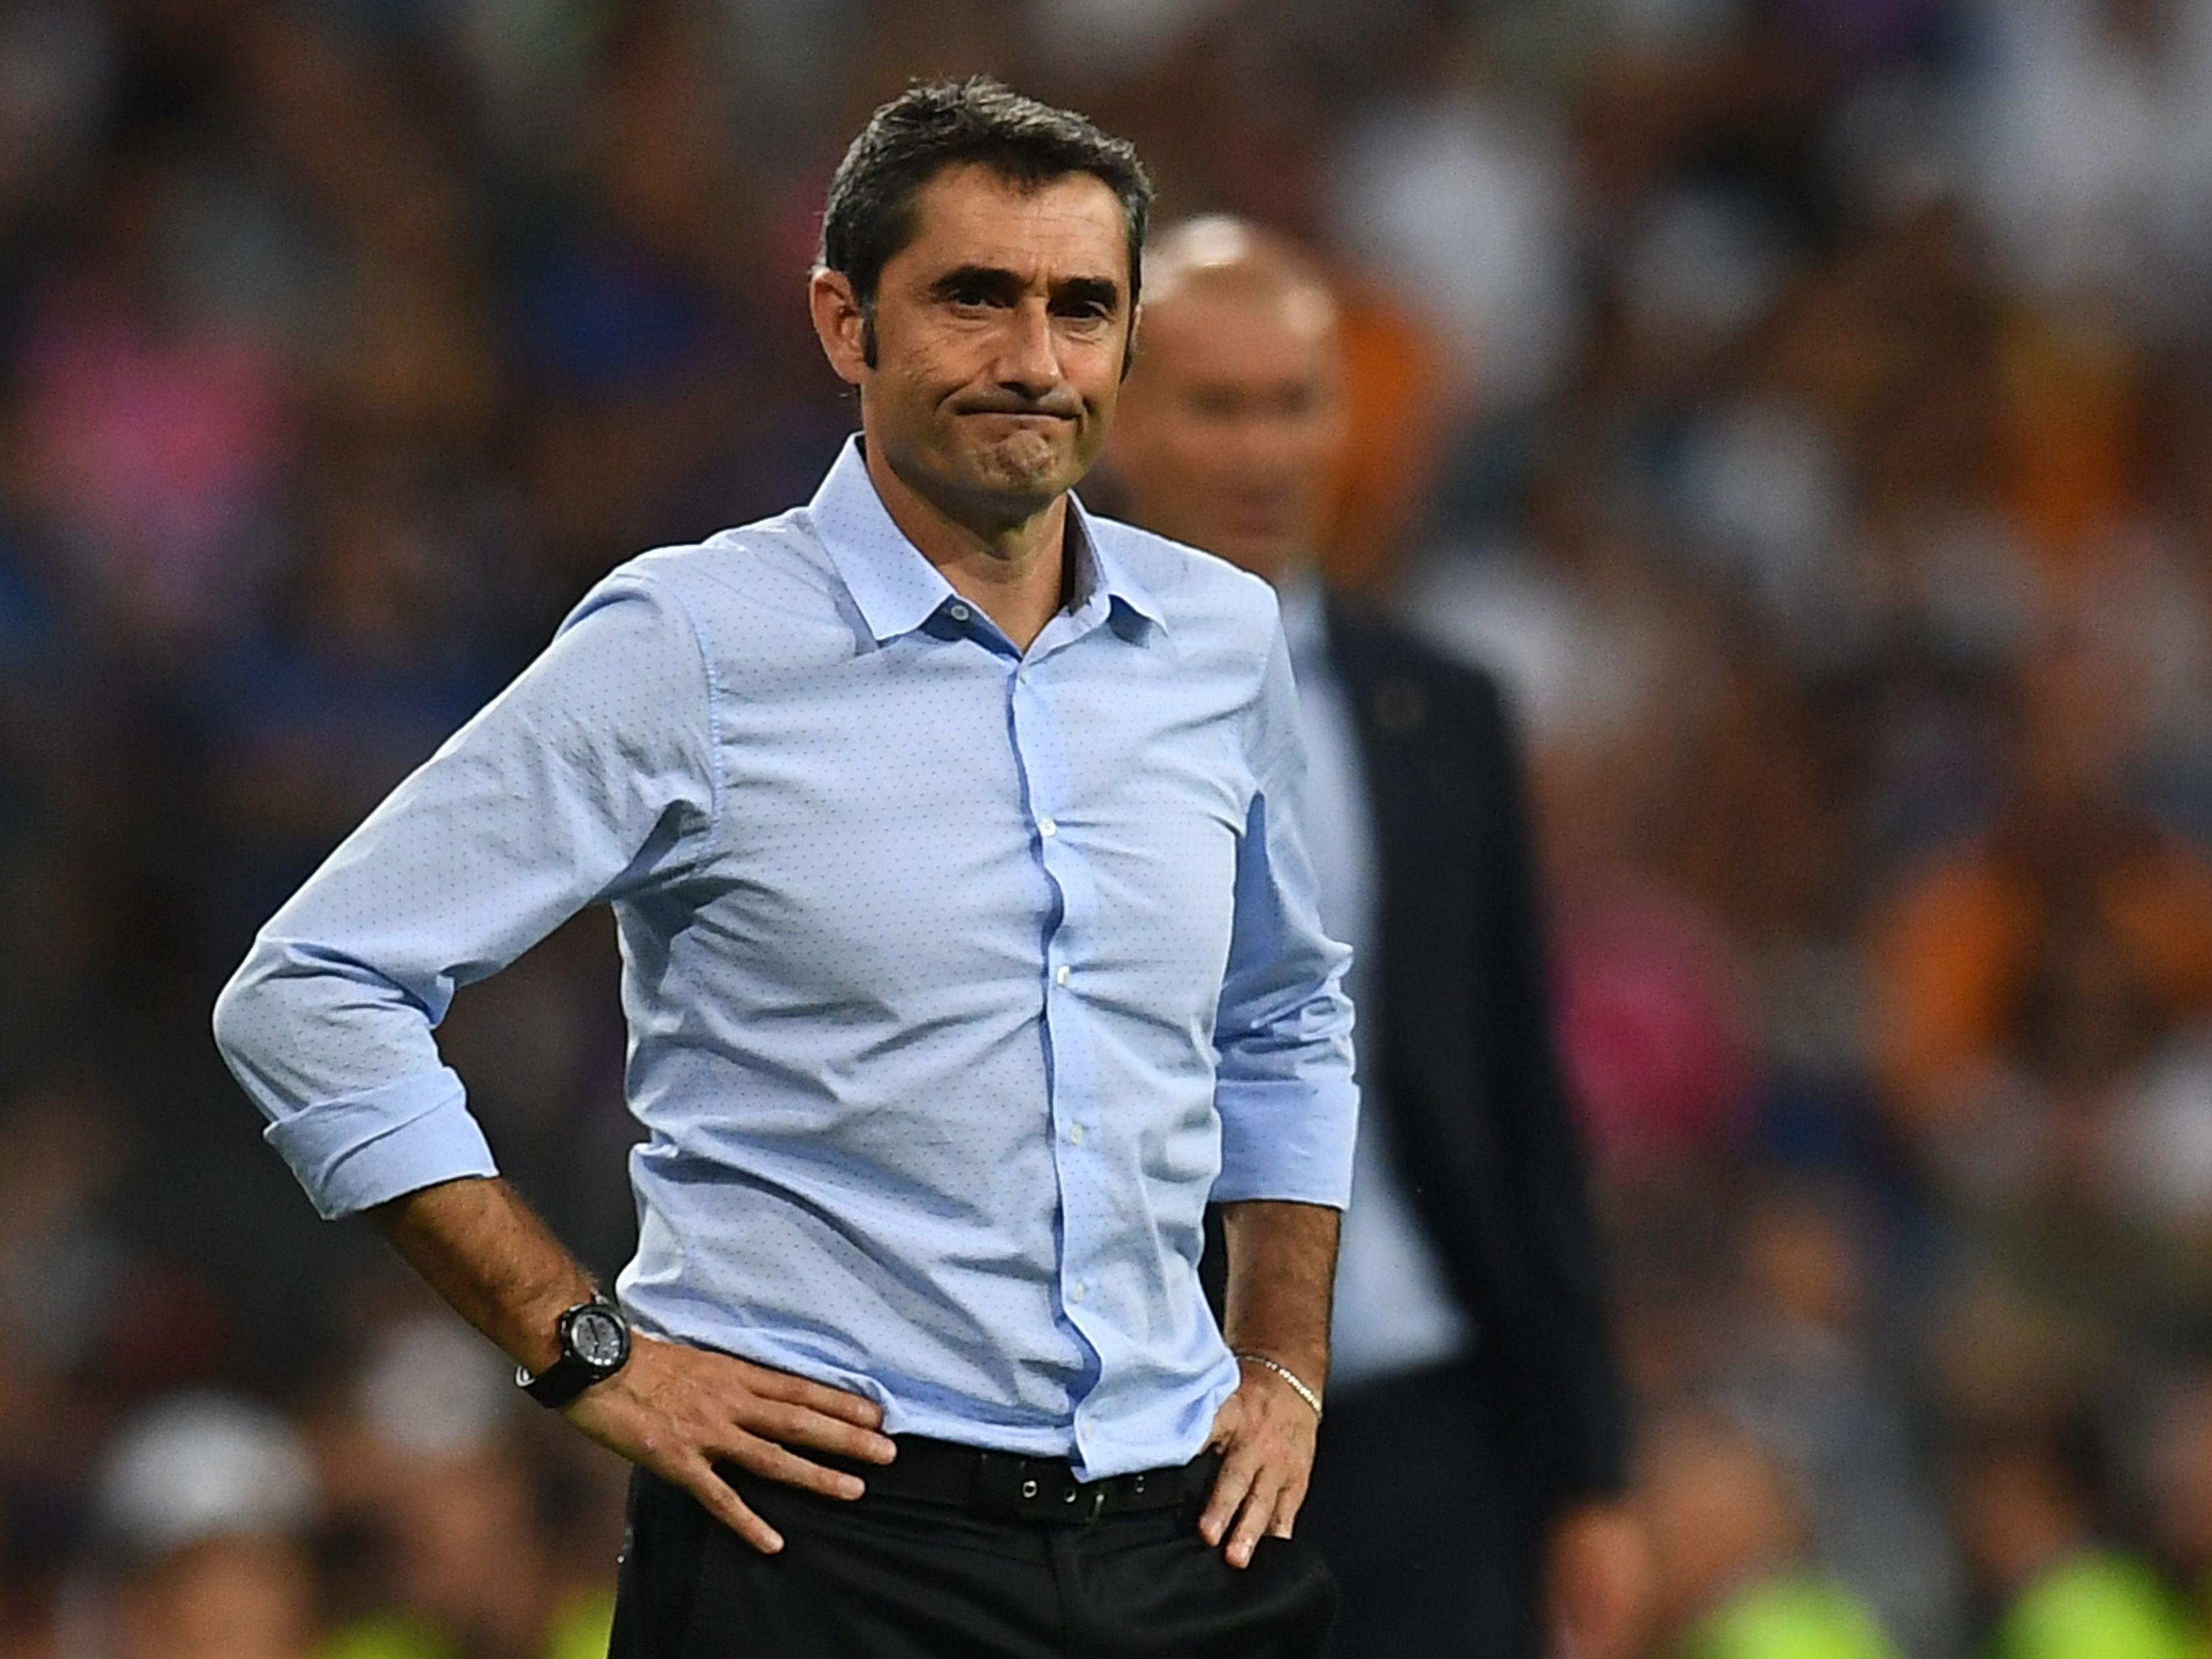 Barca boss Ernesto Valverde will have to match the £135m price valuation if he wishes to sign the youngster this summer